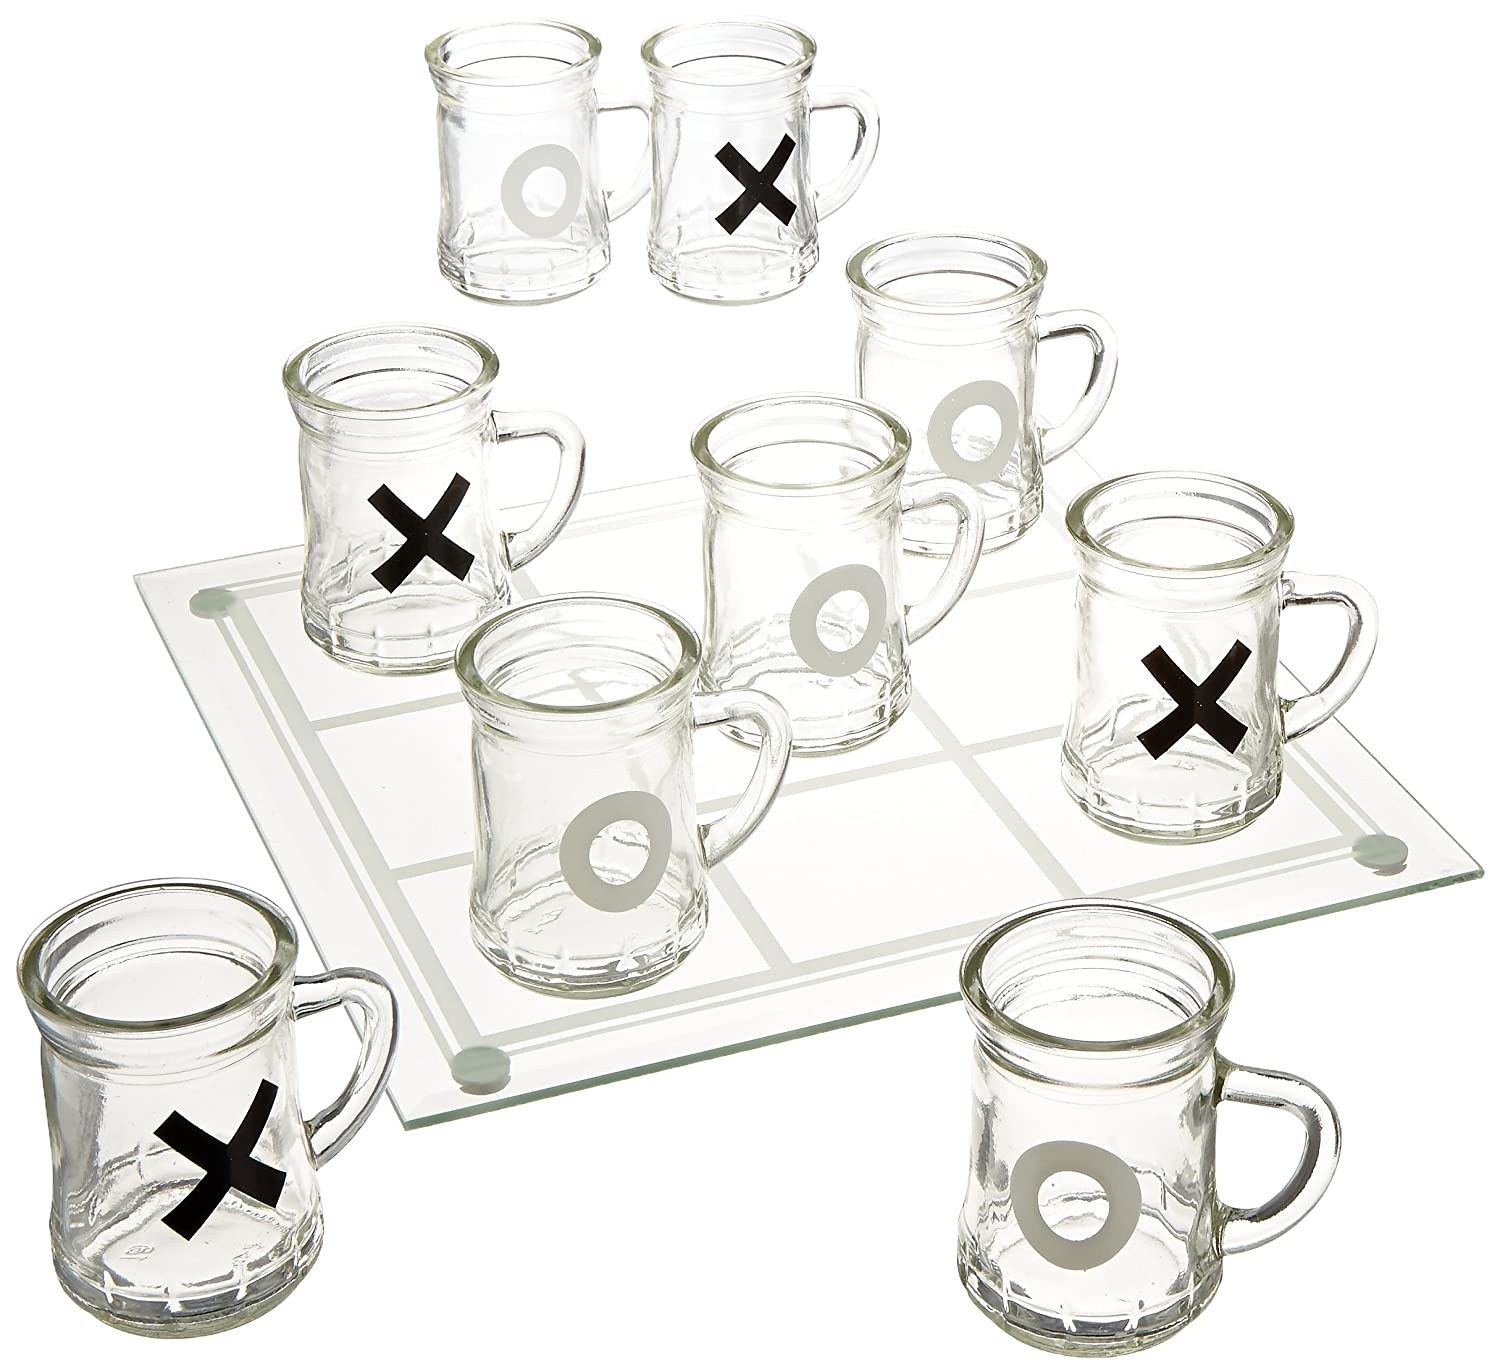 Game Night Tic Tac Toe Drinking Shot Glass Set with Mini Beer Mugs Jay Imports 326286-GB